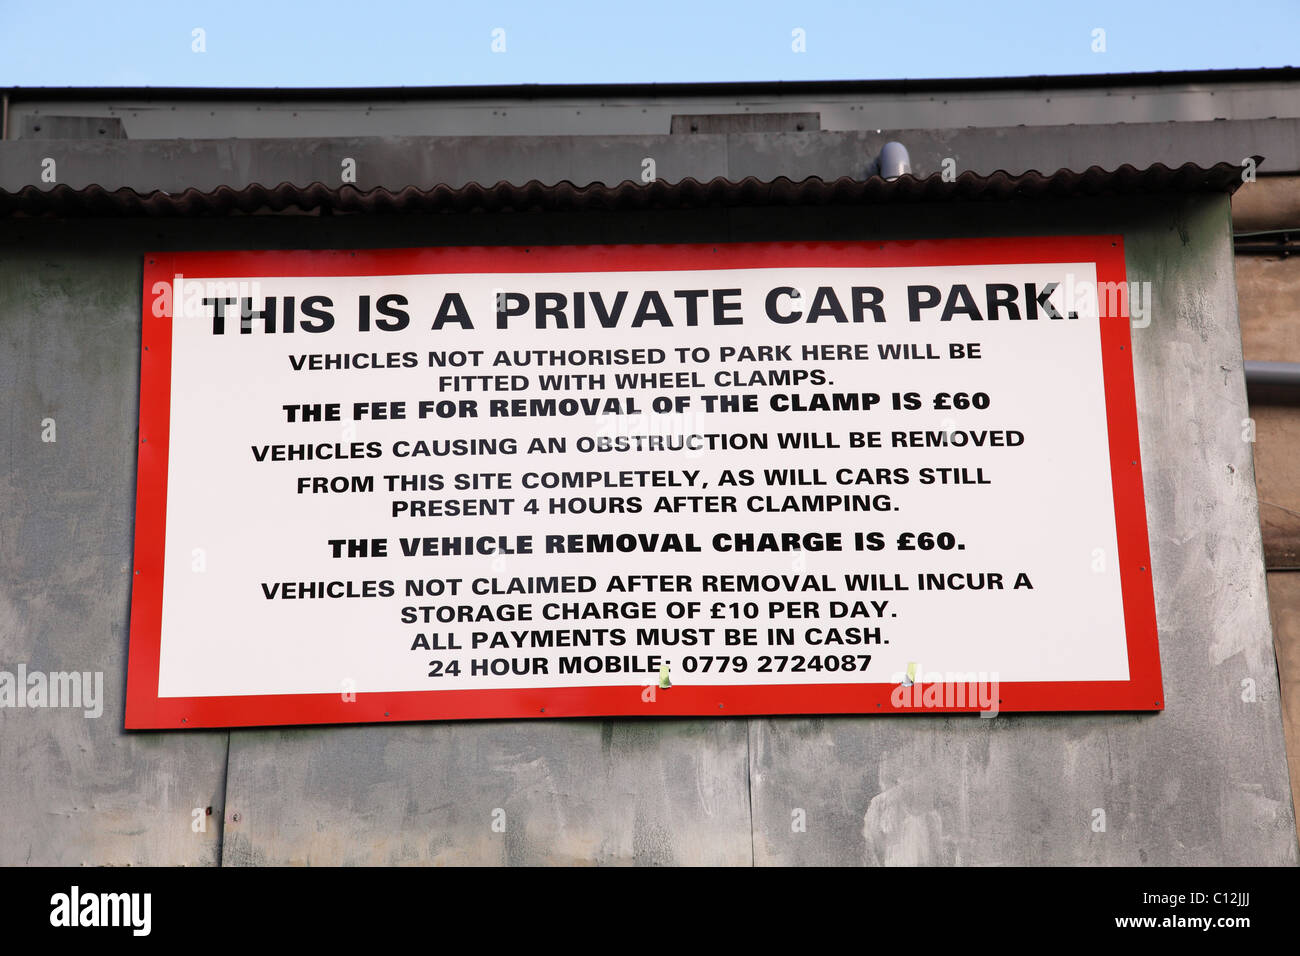 A wheel clamping warning sign in a private car park in a U.K. city. - Stock Image